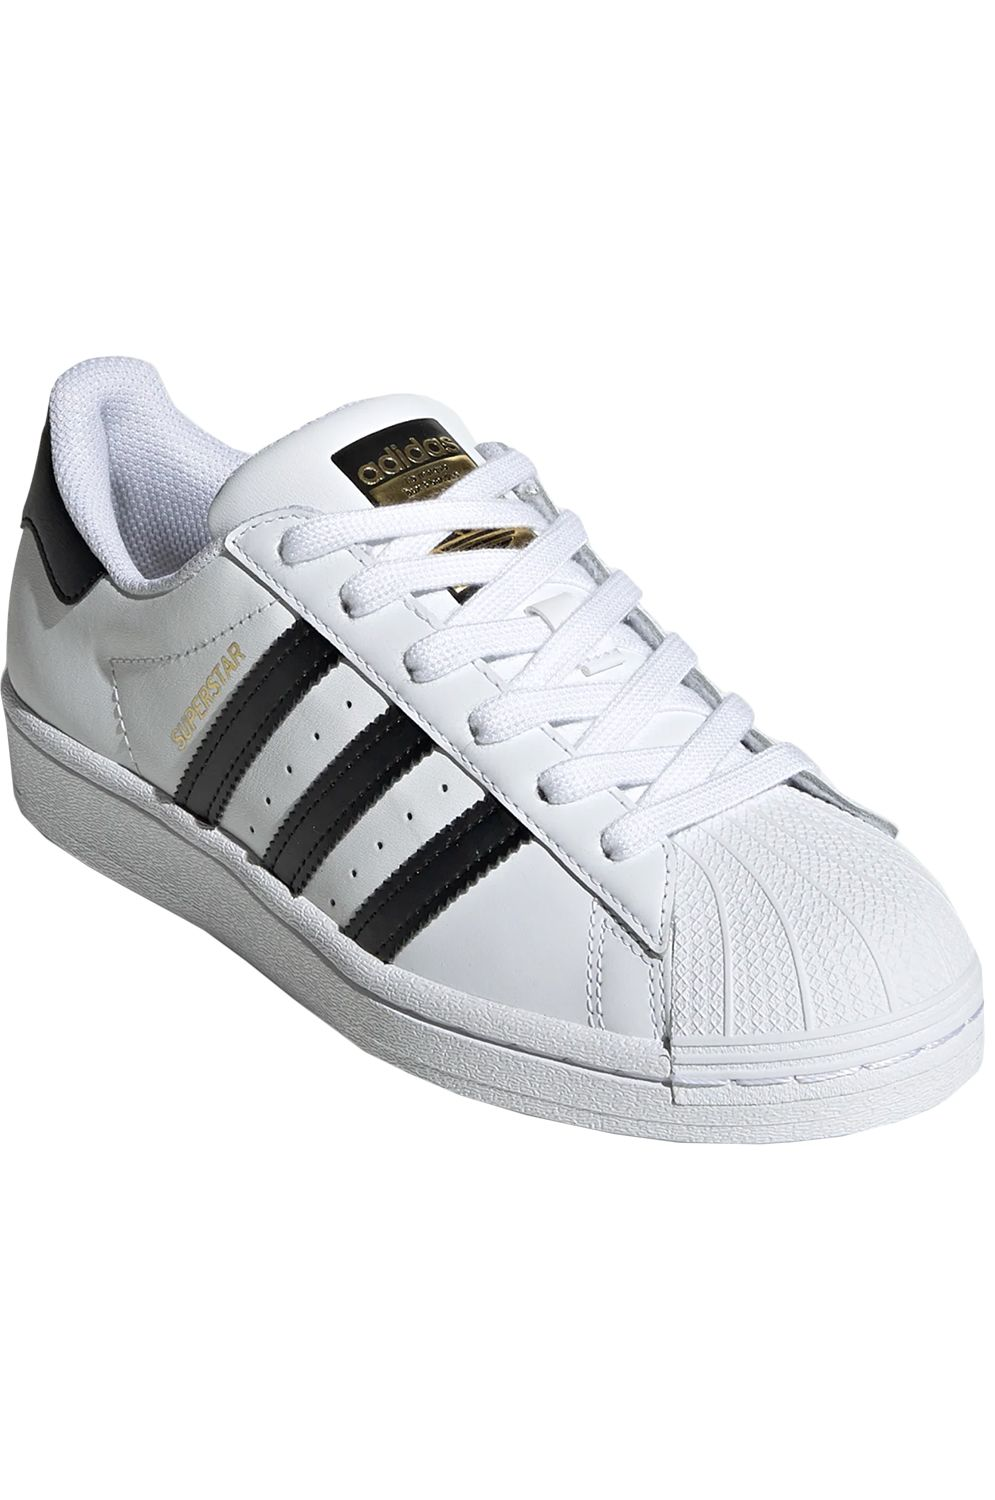 Tenis Adidas SUPERSTAR J Ftwr White/Core Black/Ftwr White